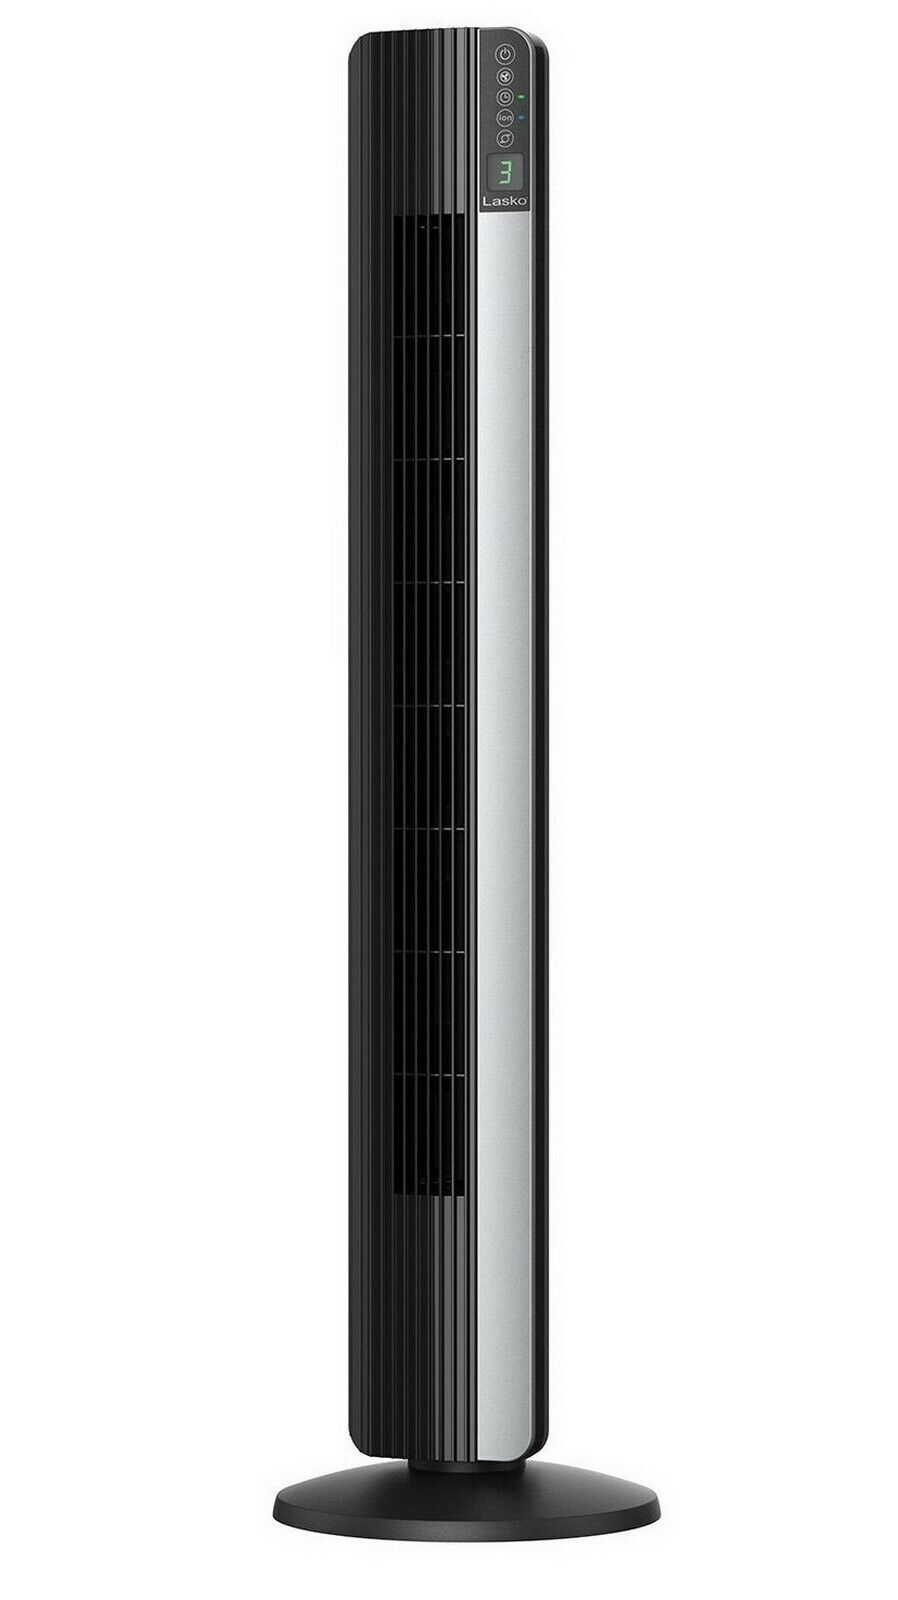 Tower Fan 48″ Oscillating High Velocity 3 Speed with Remote Control Lasko Heating, Cooling & Air